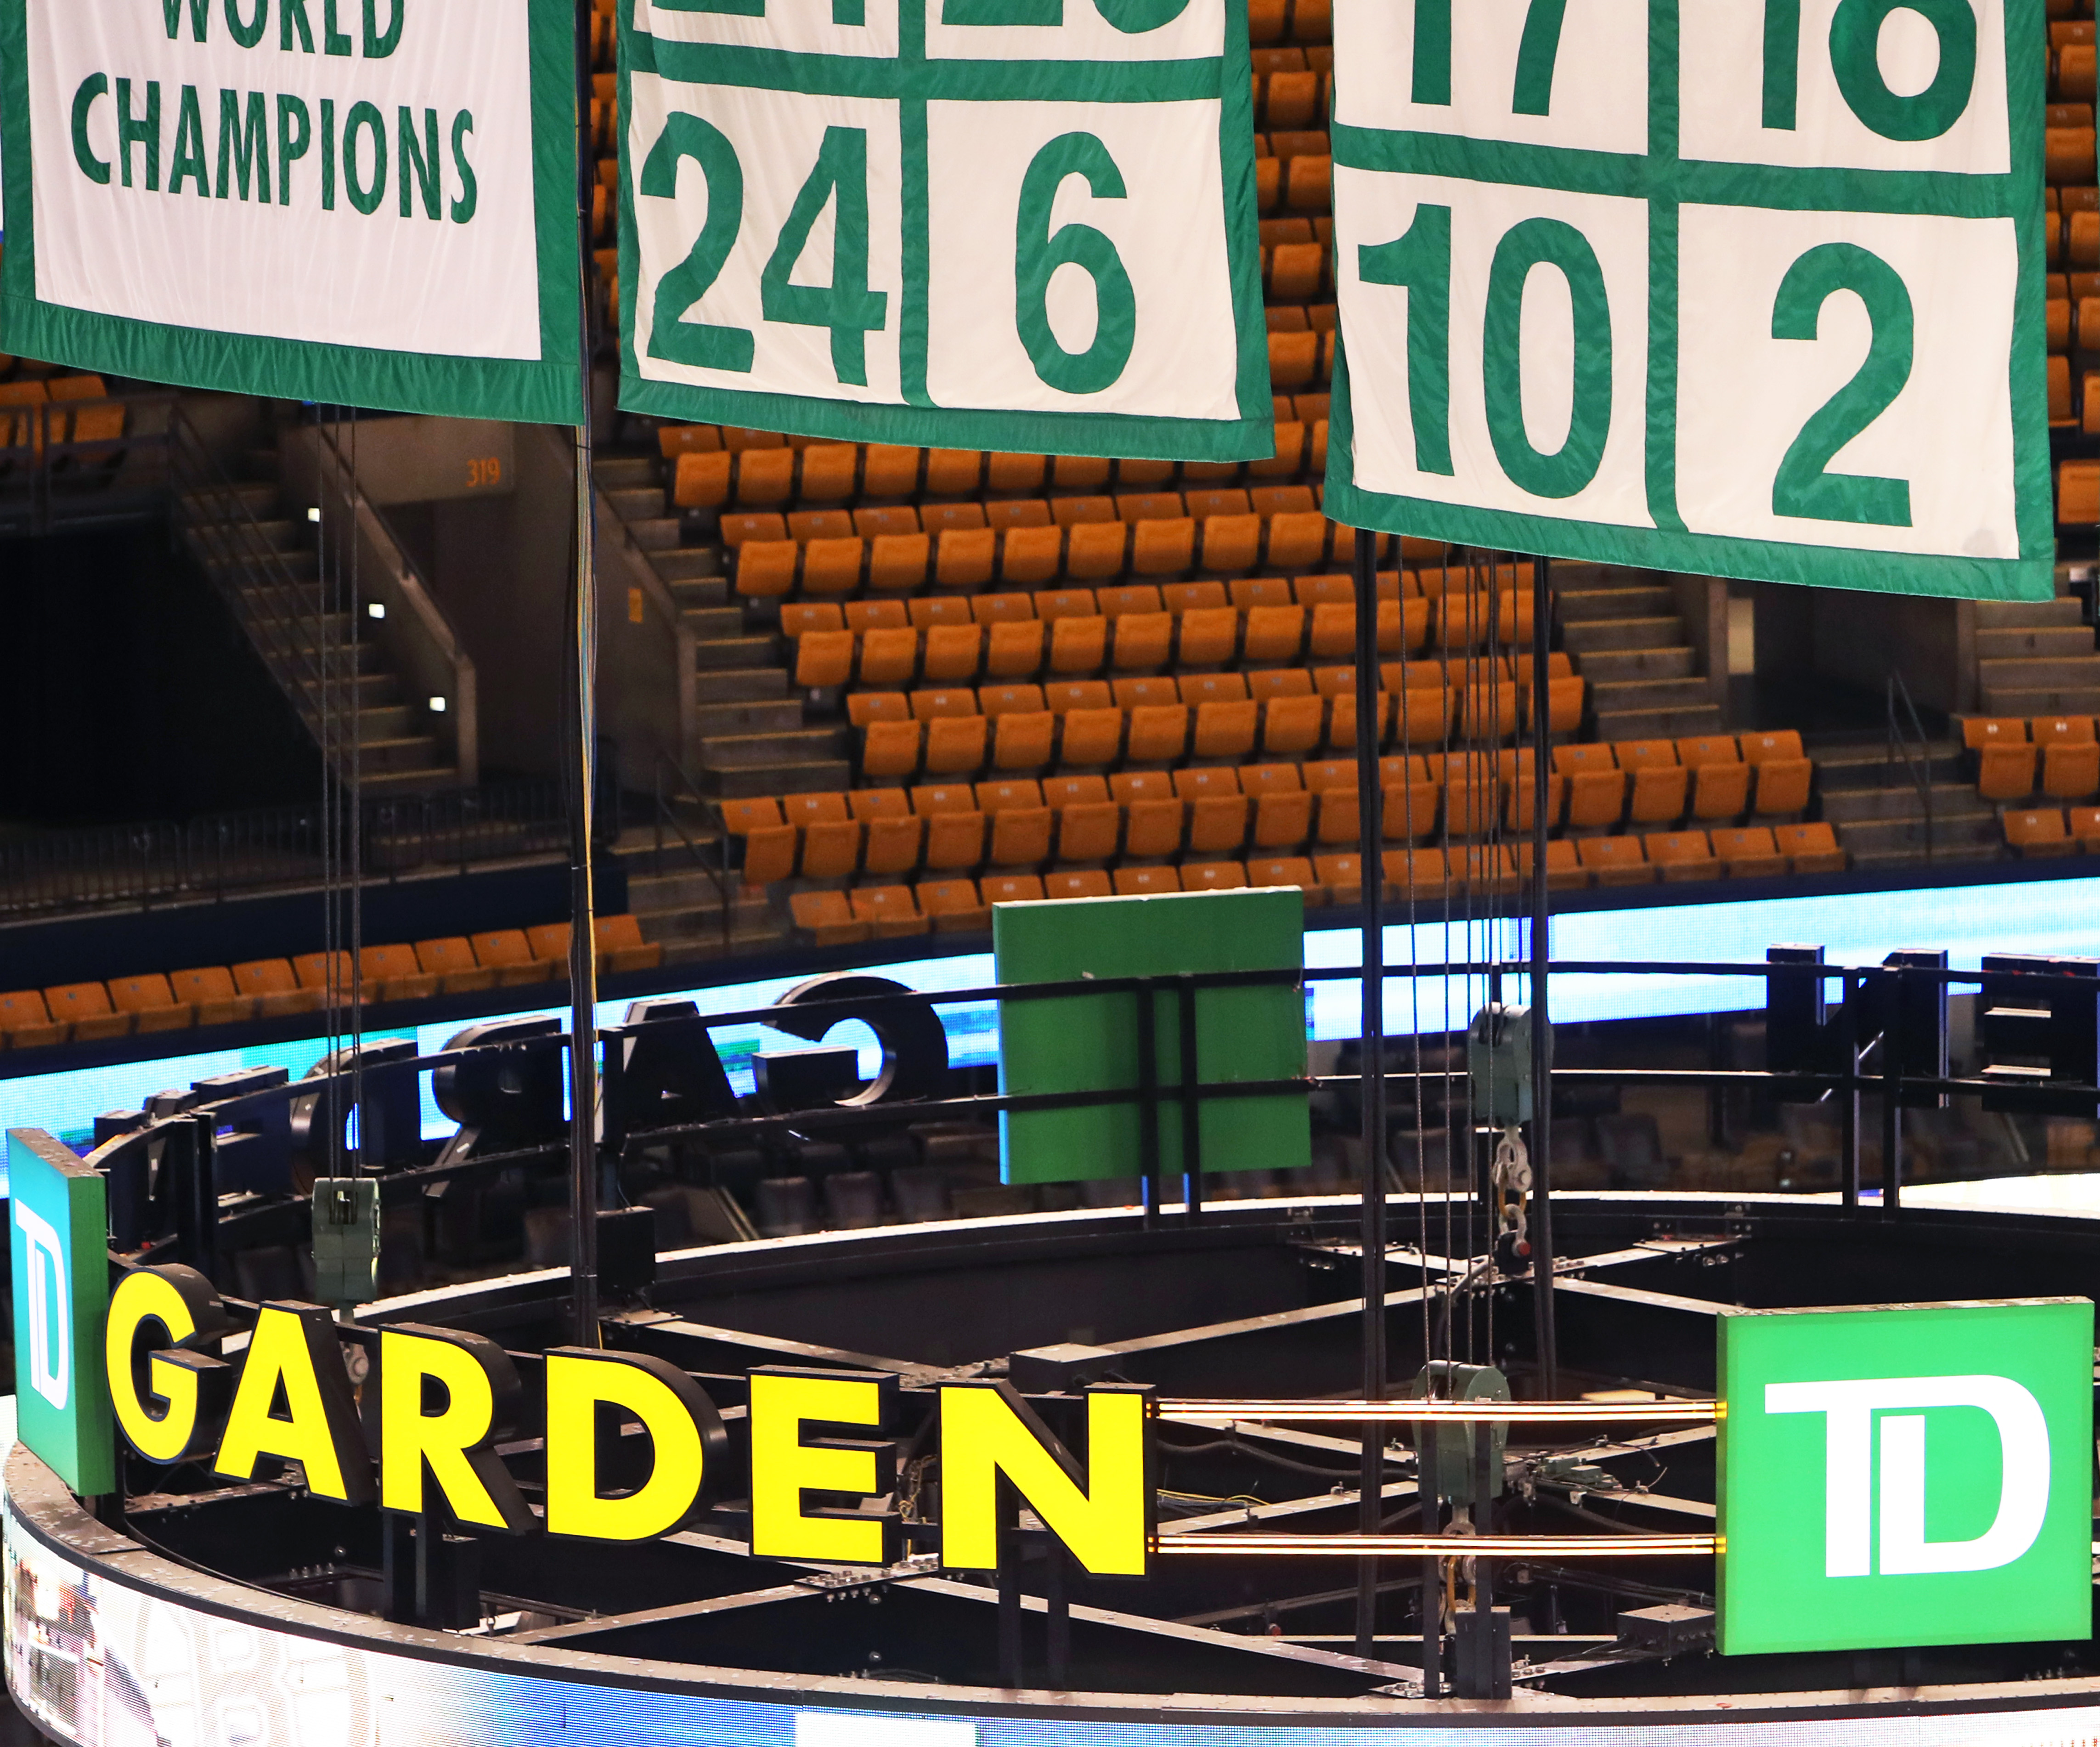 Why was Boston Garden nearly empty when Bill Russell's number was